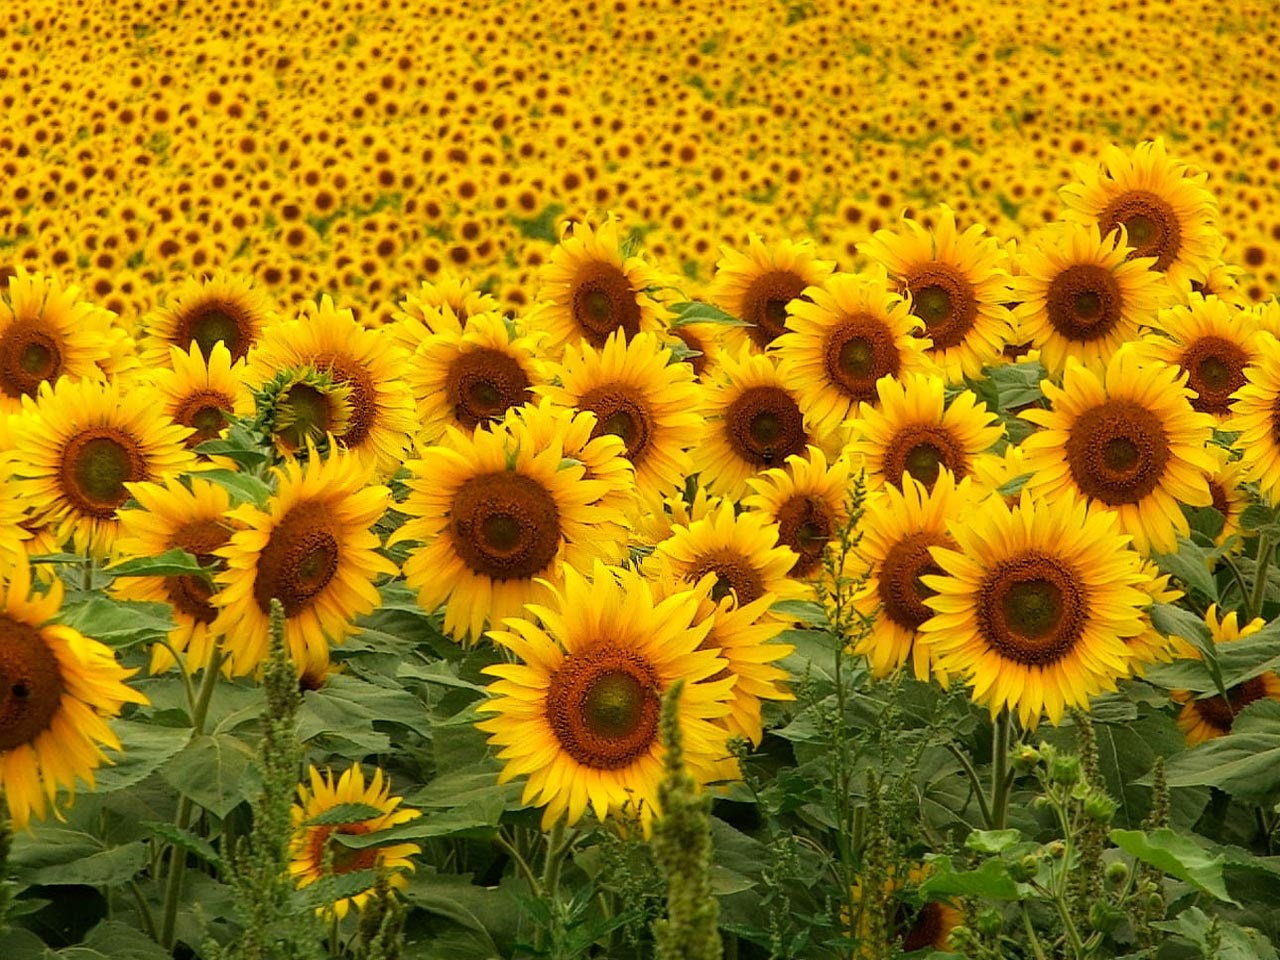 sunflowers wallpaper [1280x960]